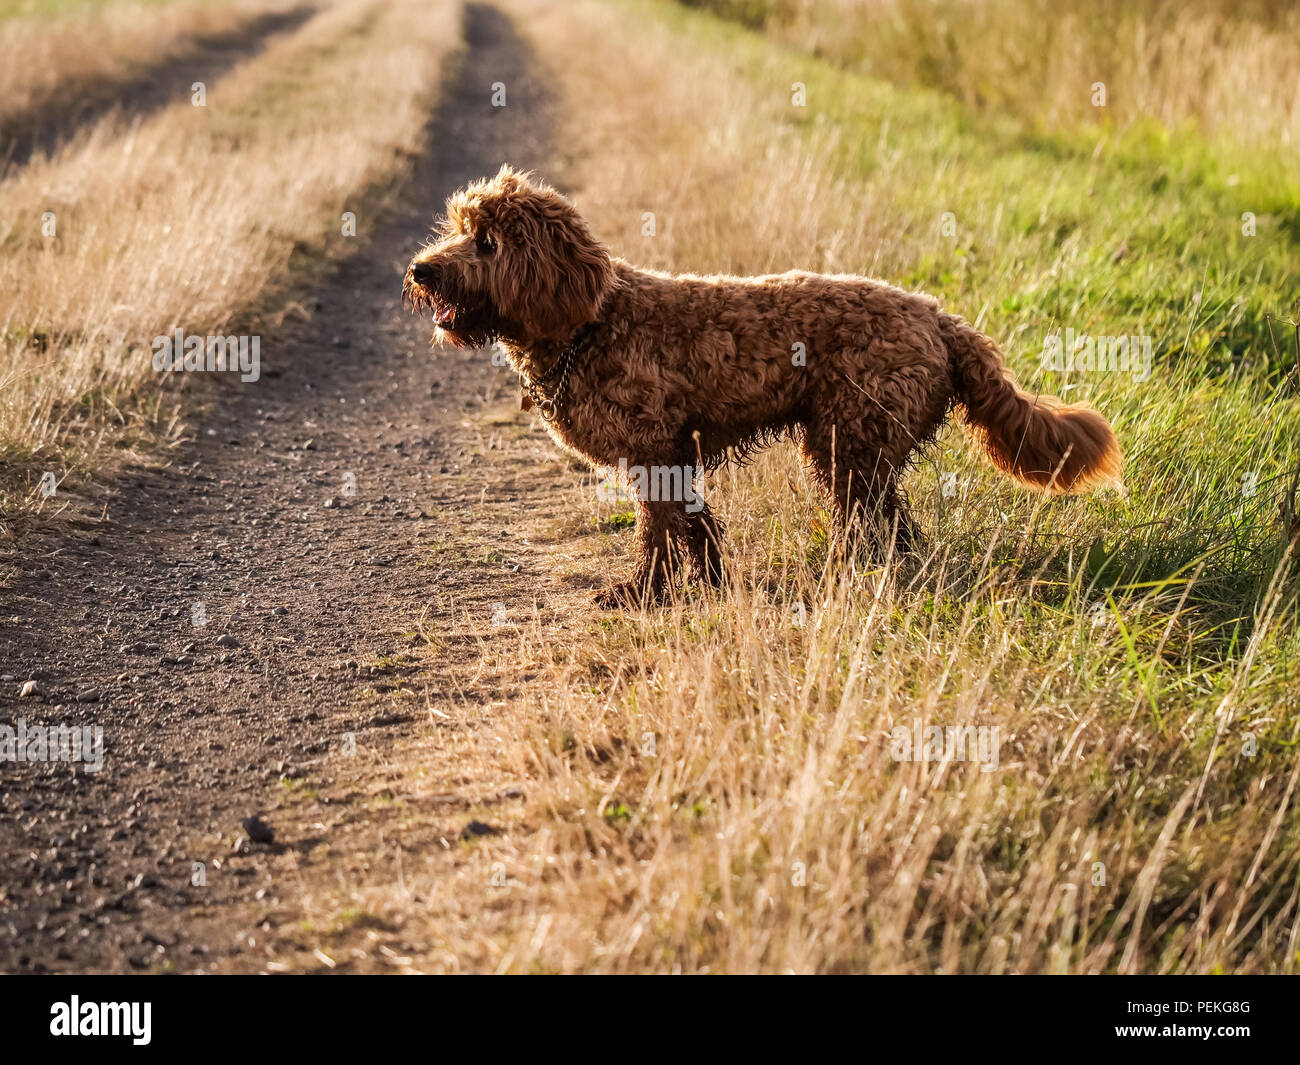 Red haired Cockapoo dog on dusty track alert and watching - Stock Image